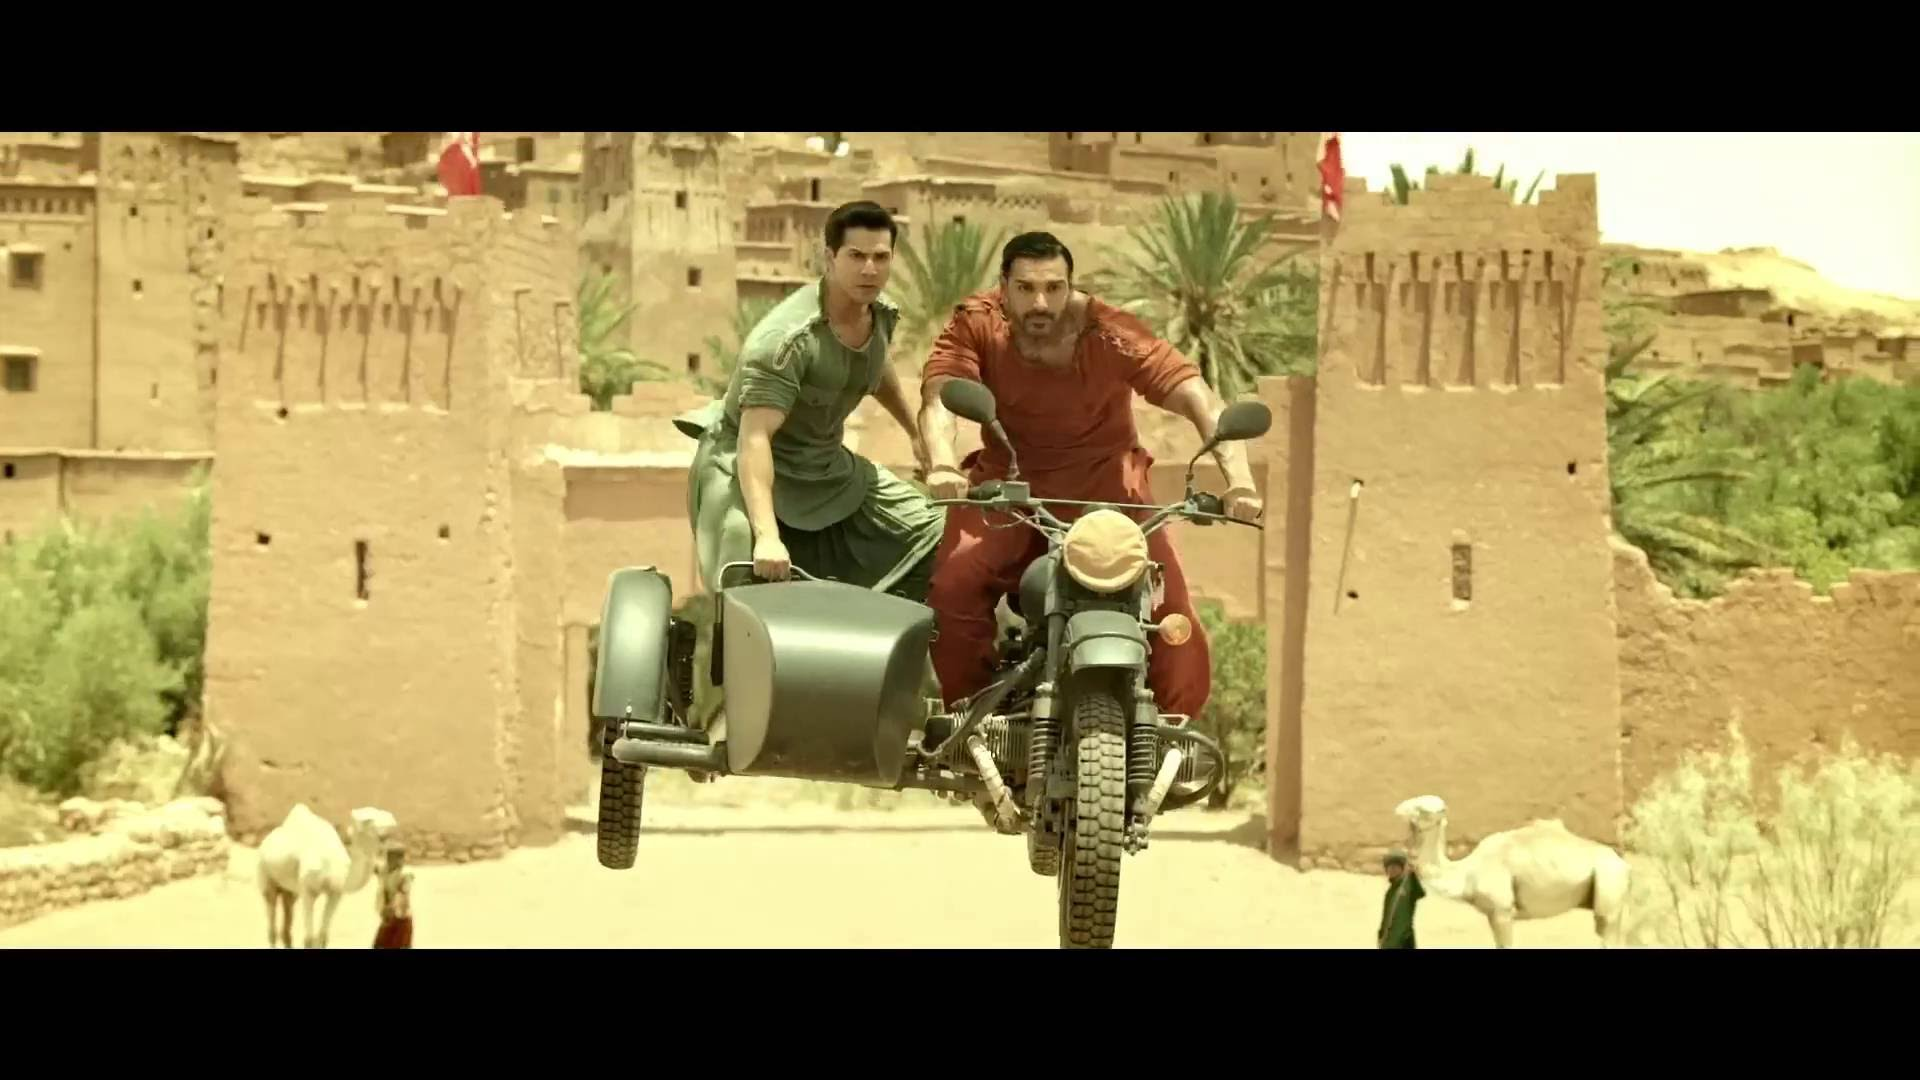 Dishoom Trailer Review- Varun Dhawan and John Abraham are the (only) saving graces